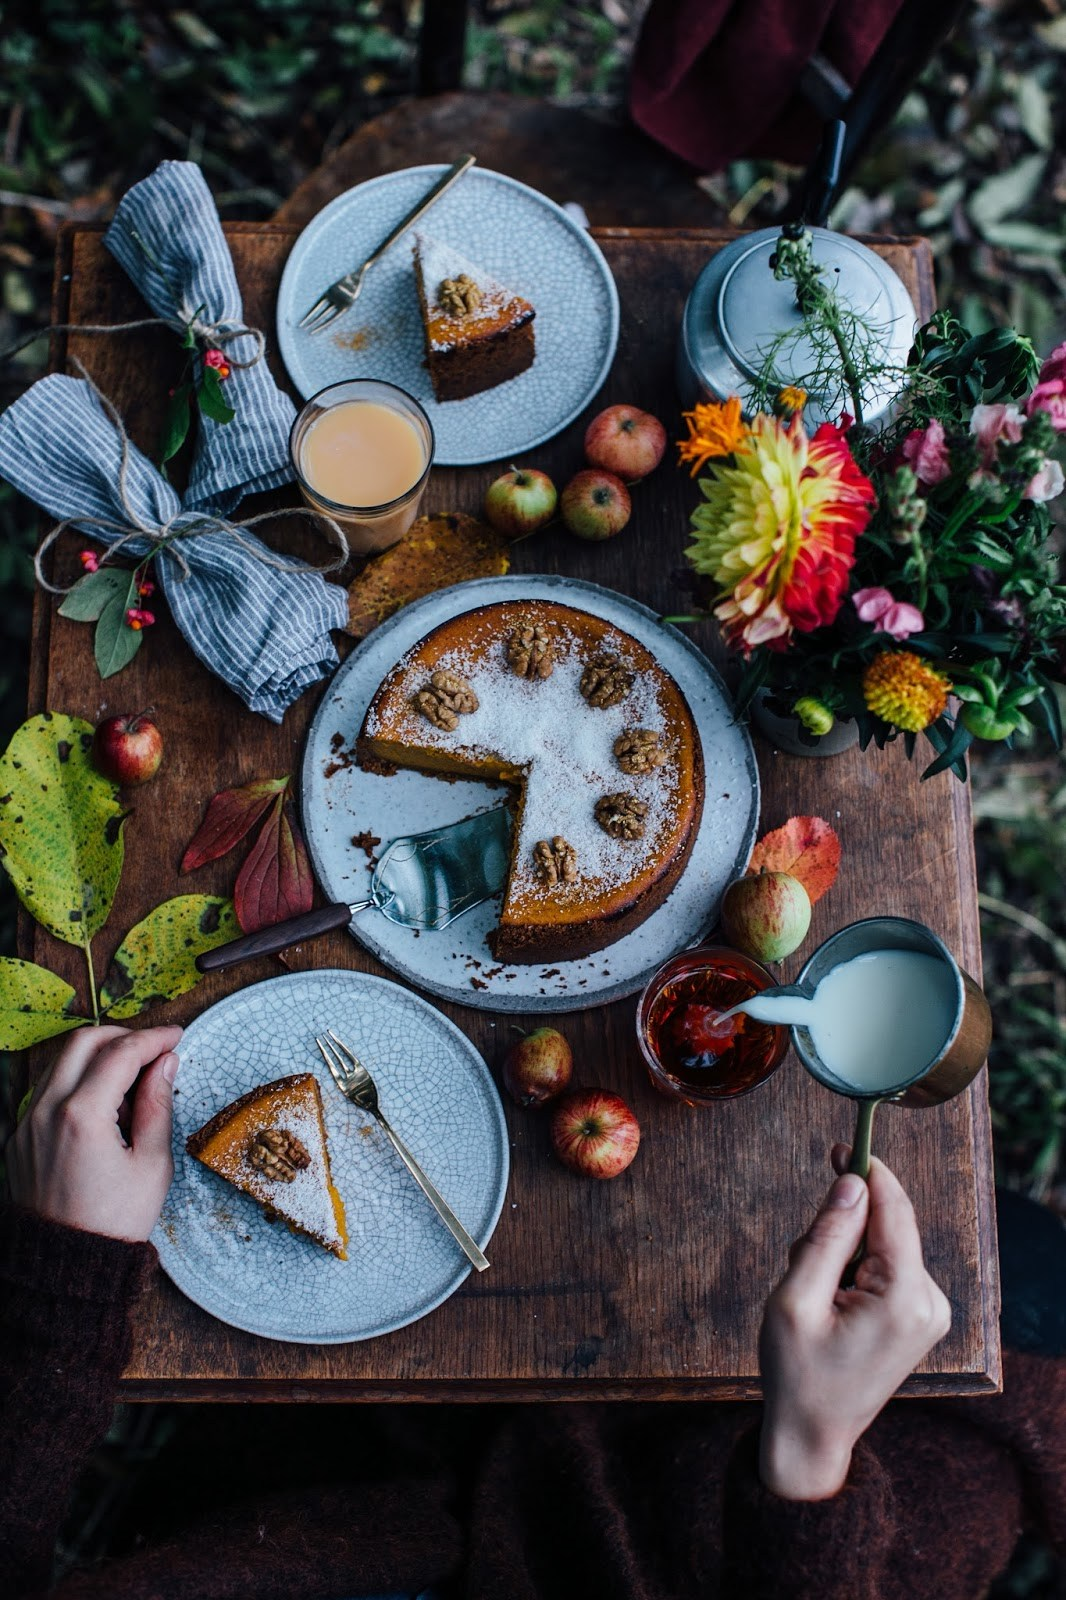 Gluten-free Pumpkin Cheesecake & the gluten-free Feel Good Box from Schär